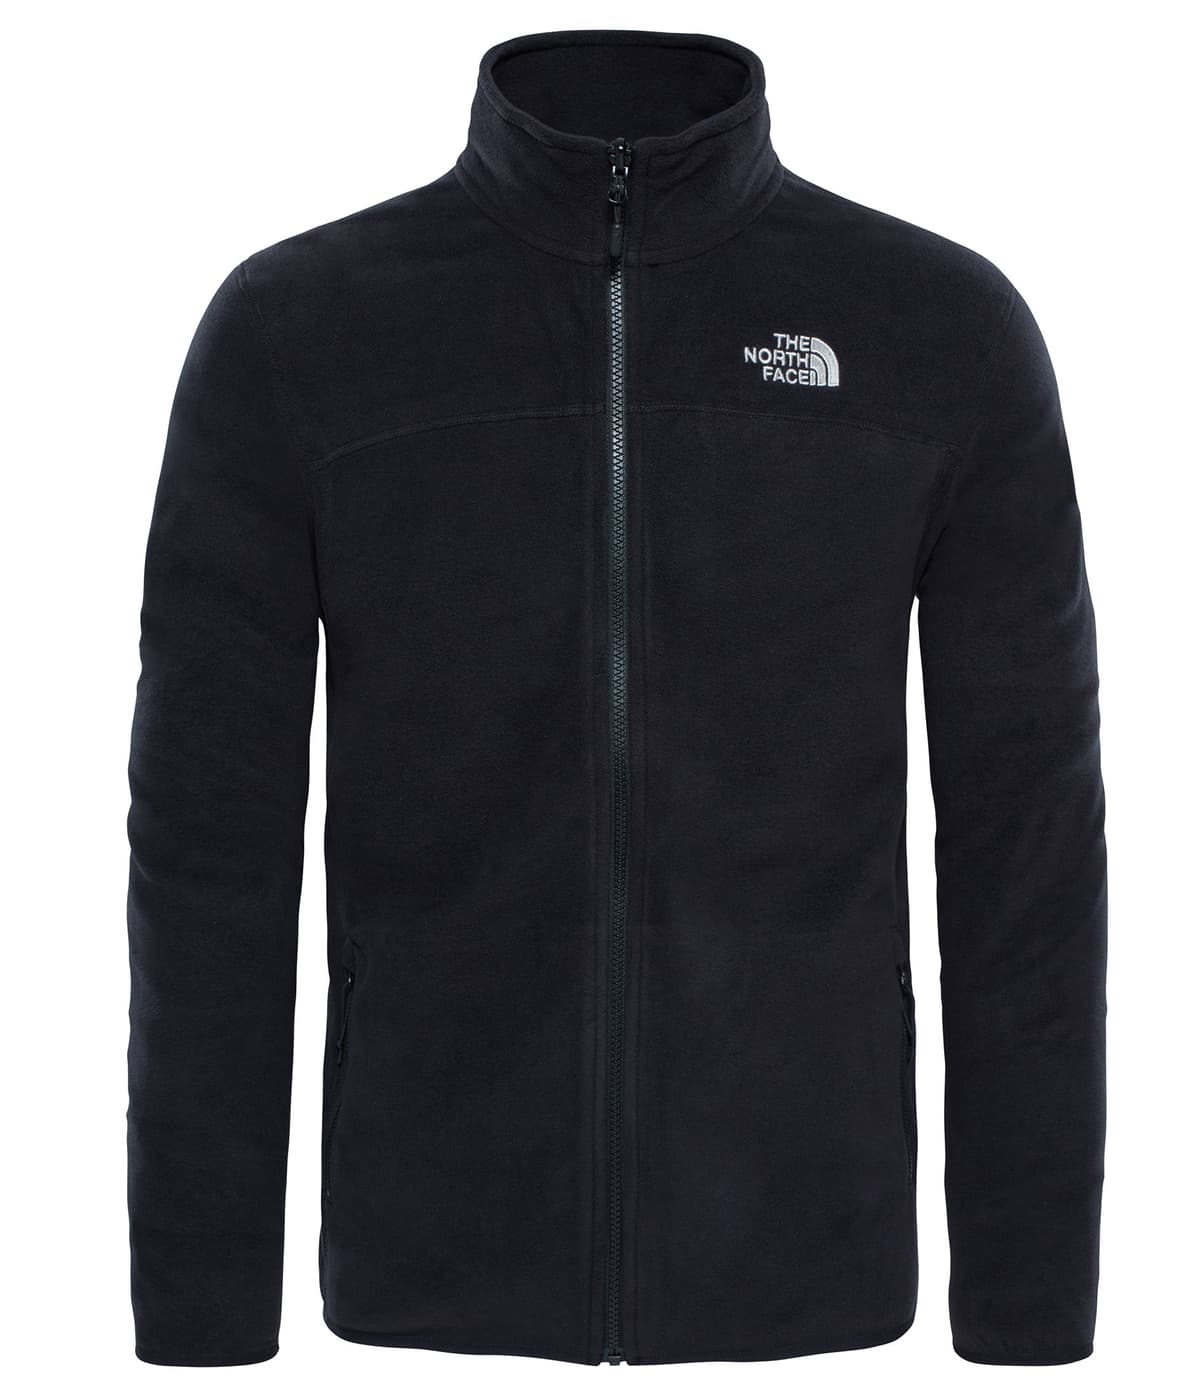 The North Face 100 Glacier Veste en polaire